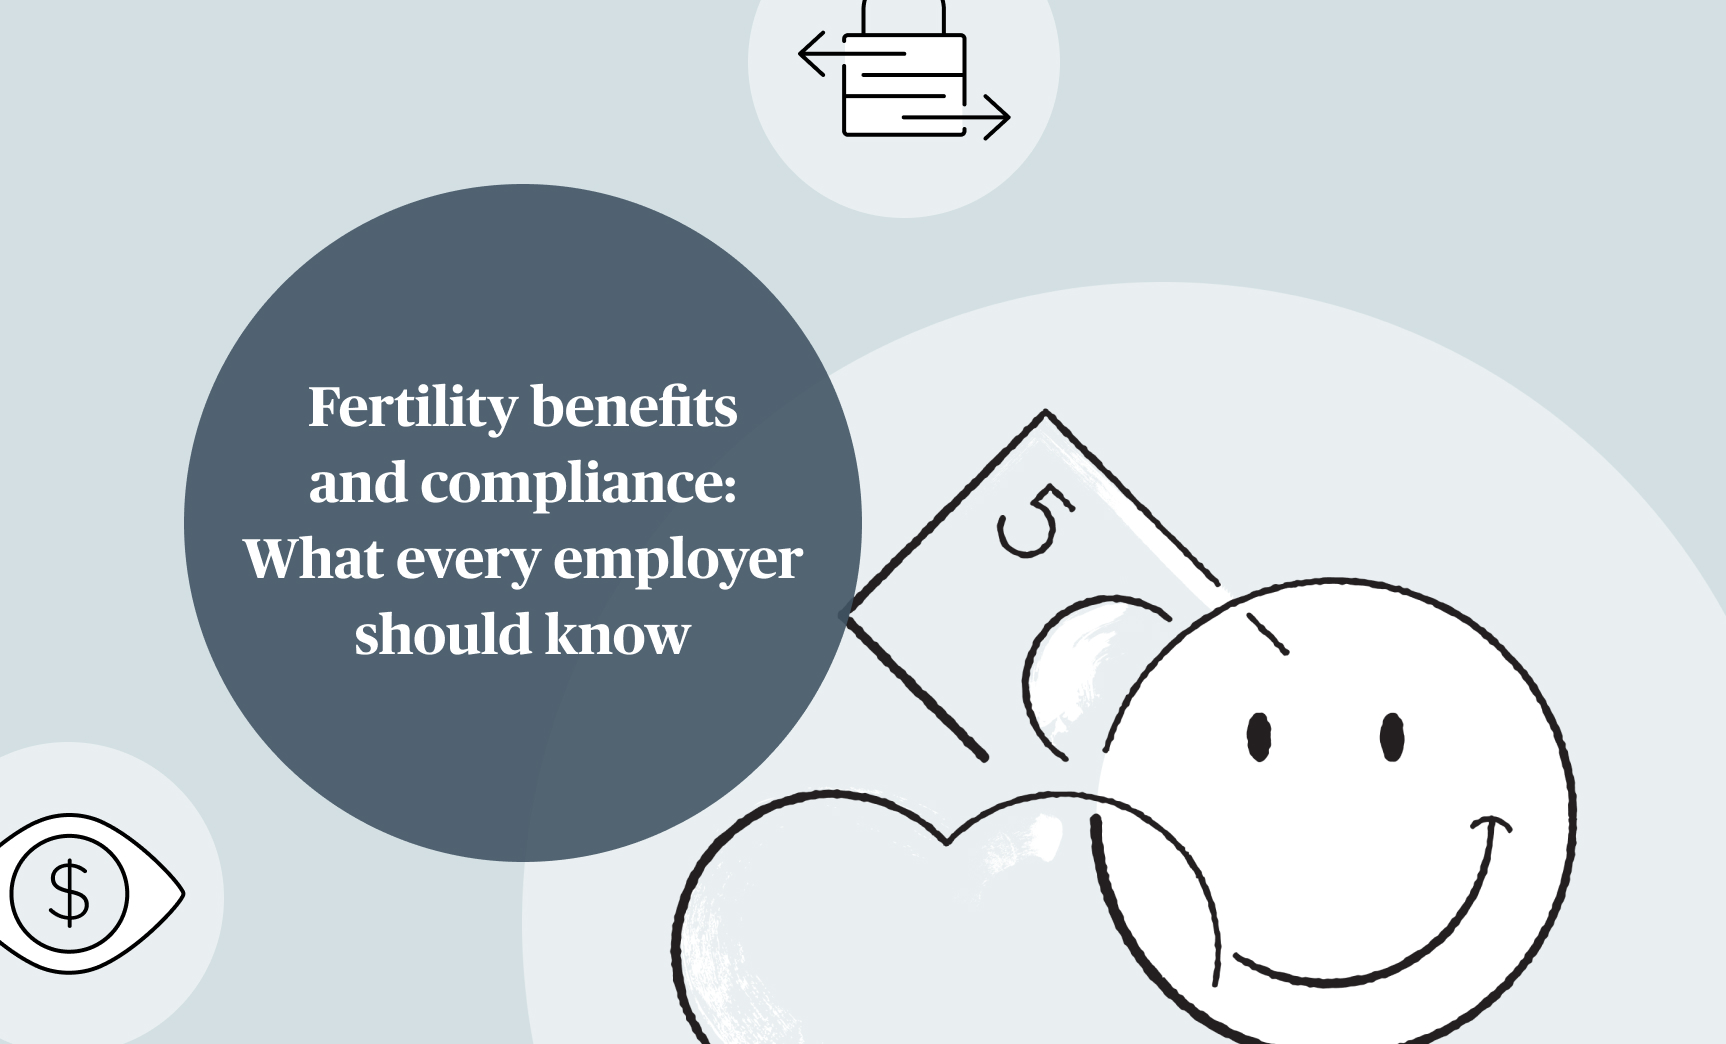 Fertility benefits and compliance: What every employer should know